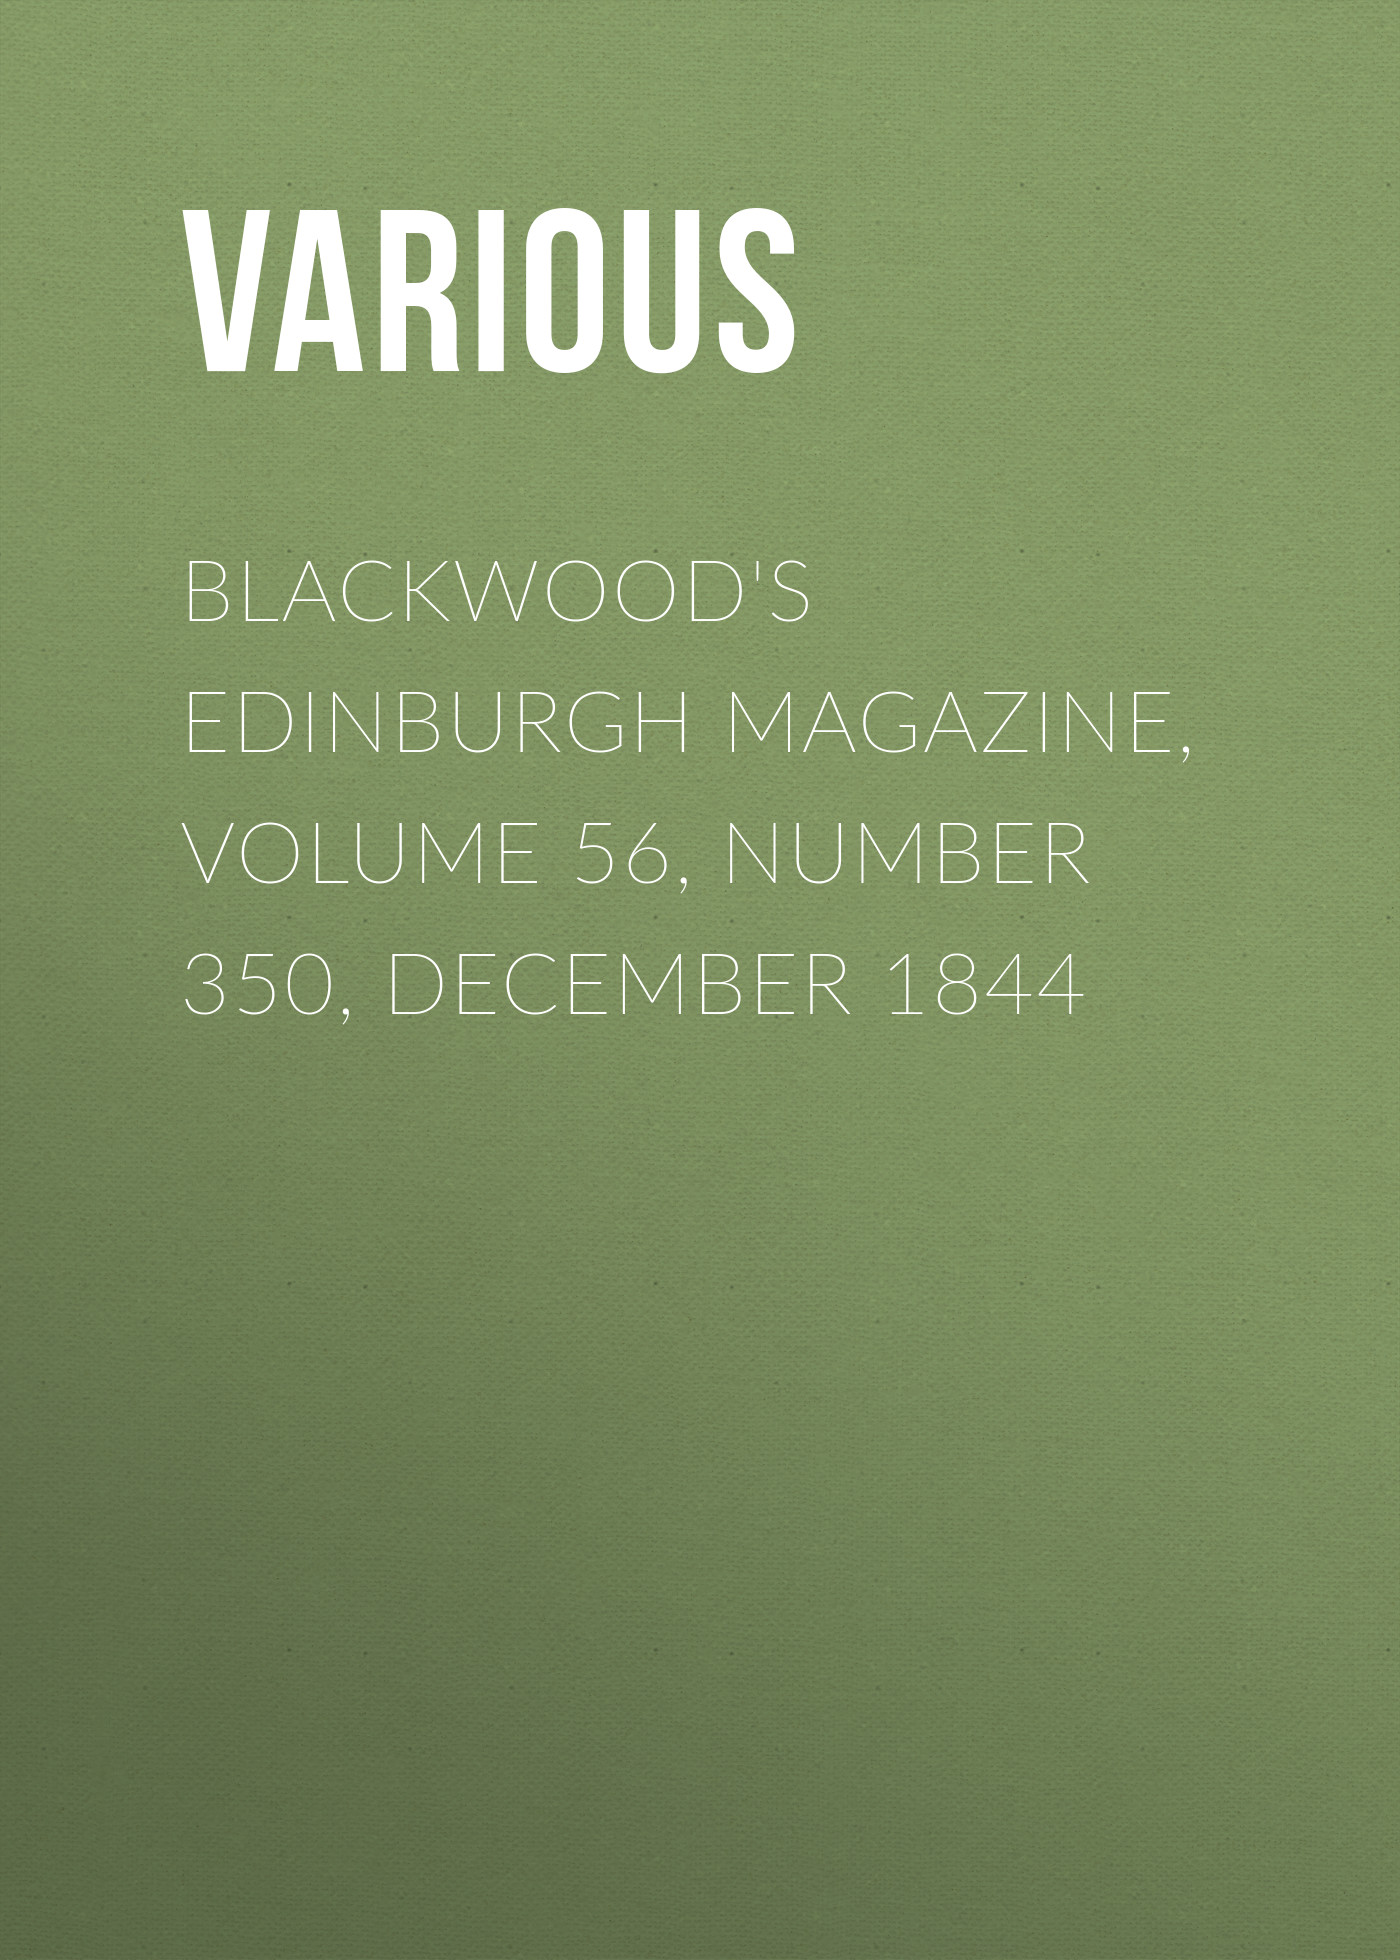 Various Blackwood's Edinburgh Magazine, Volume 56, Number 350, December 1844